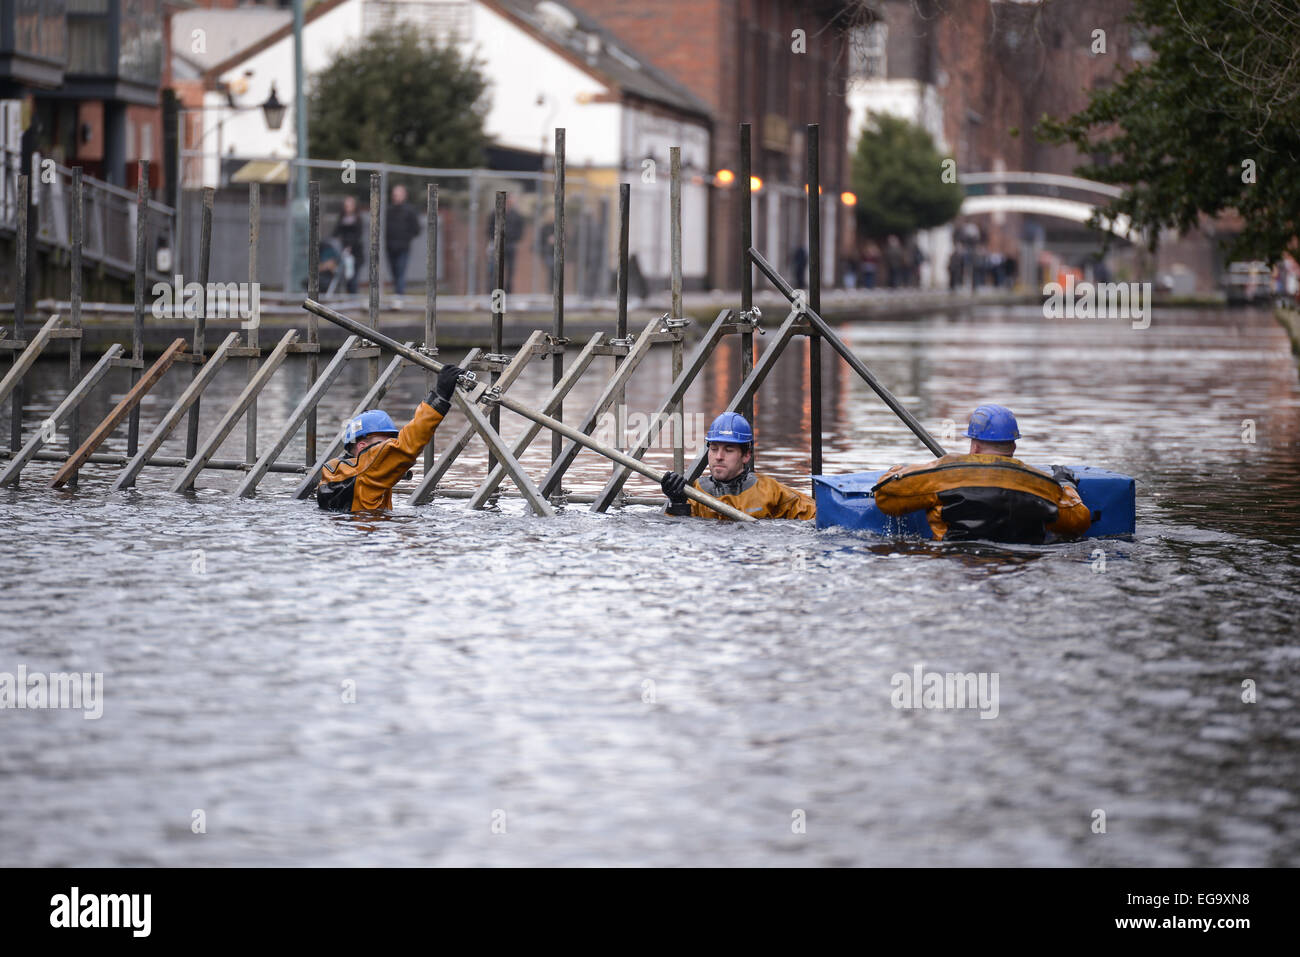 Birmingham, UK. 20th February, 2015. Canal & River Trust contractors create a dam inside the Birmingham canal - Stock Image